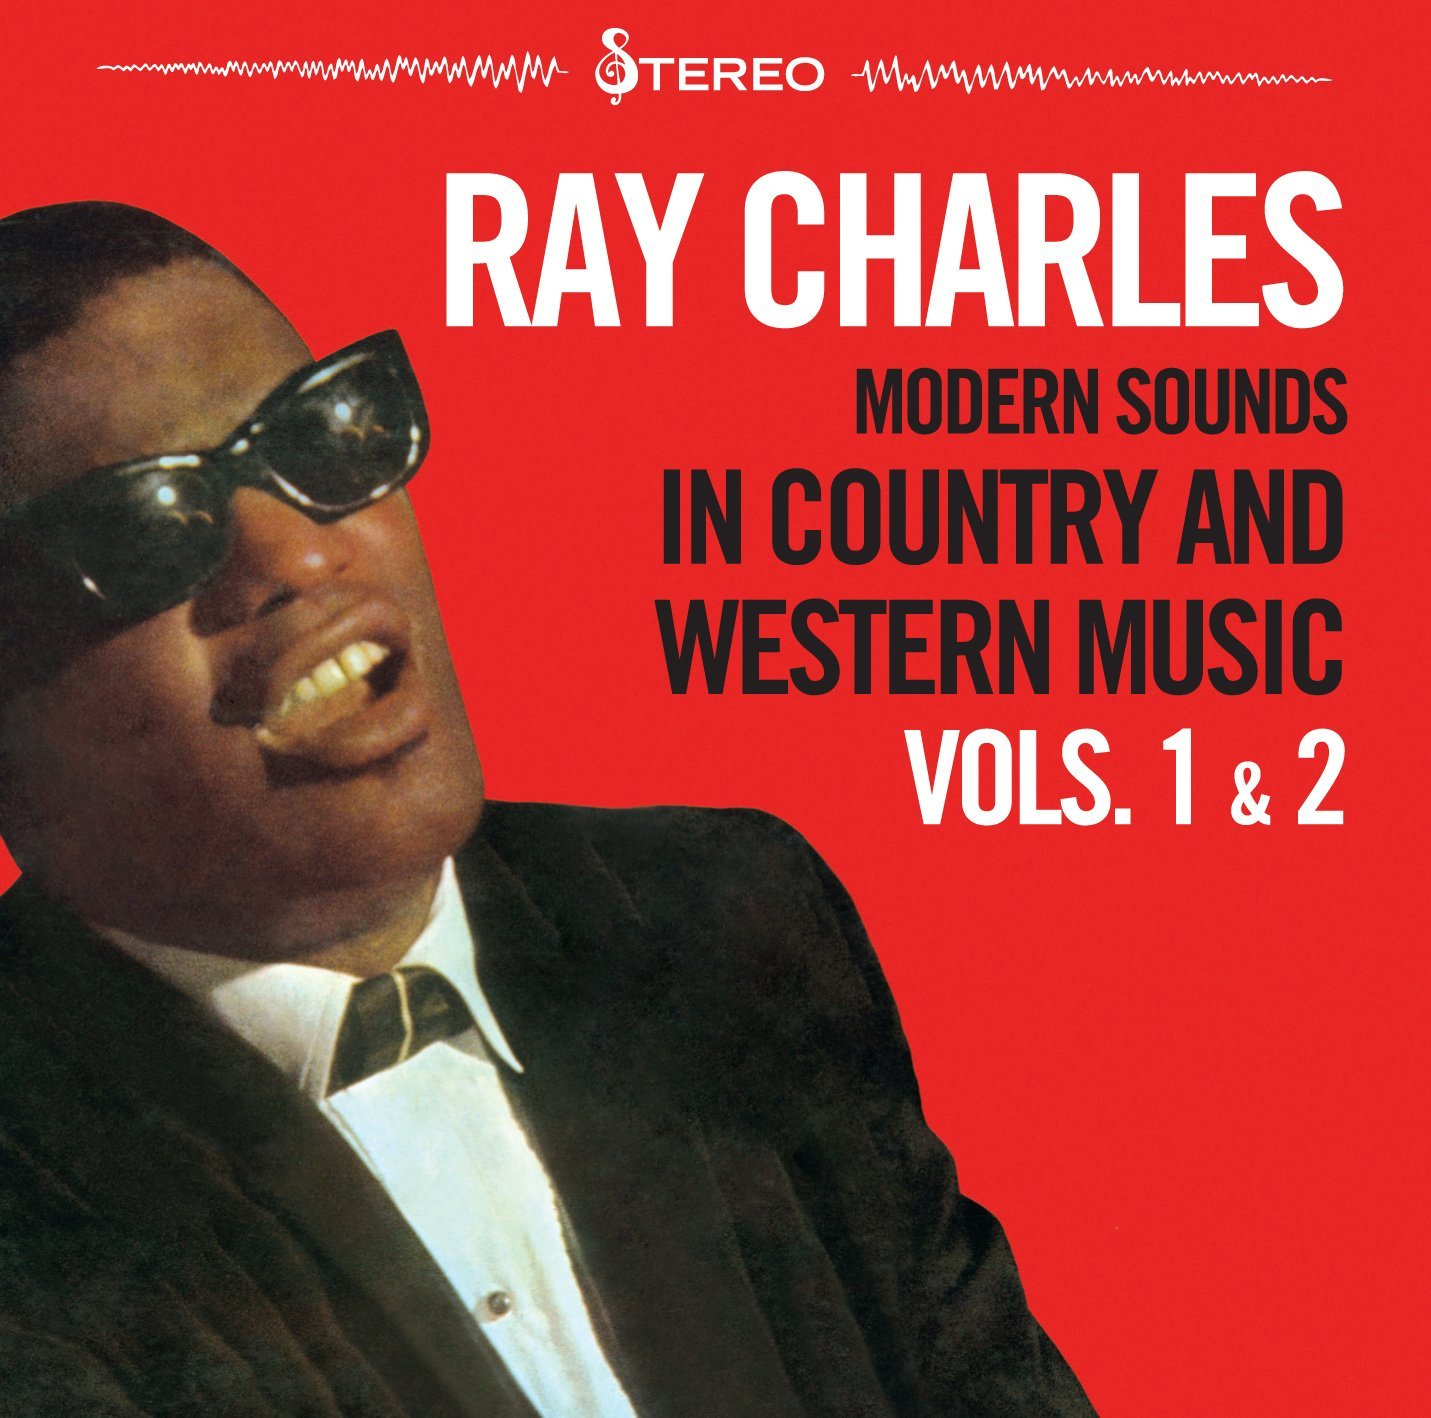 RAY CHARLES - MODERN SOUNDS IN COUNTRY & WESTERN MUSIC VOLS. 1 &